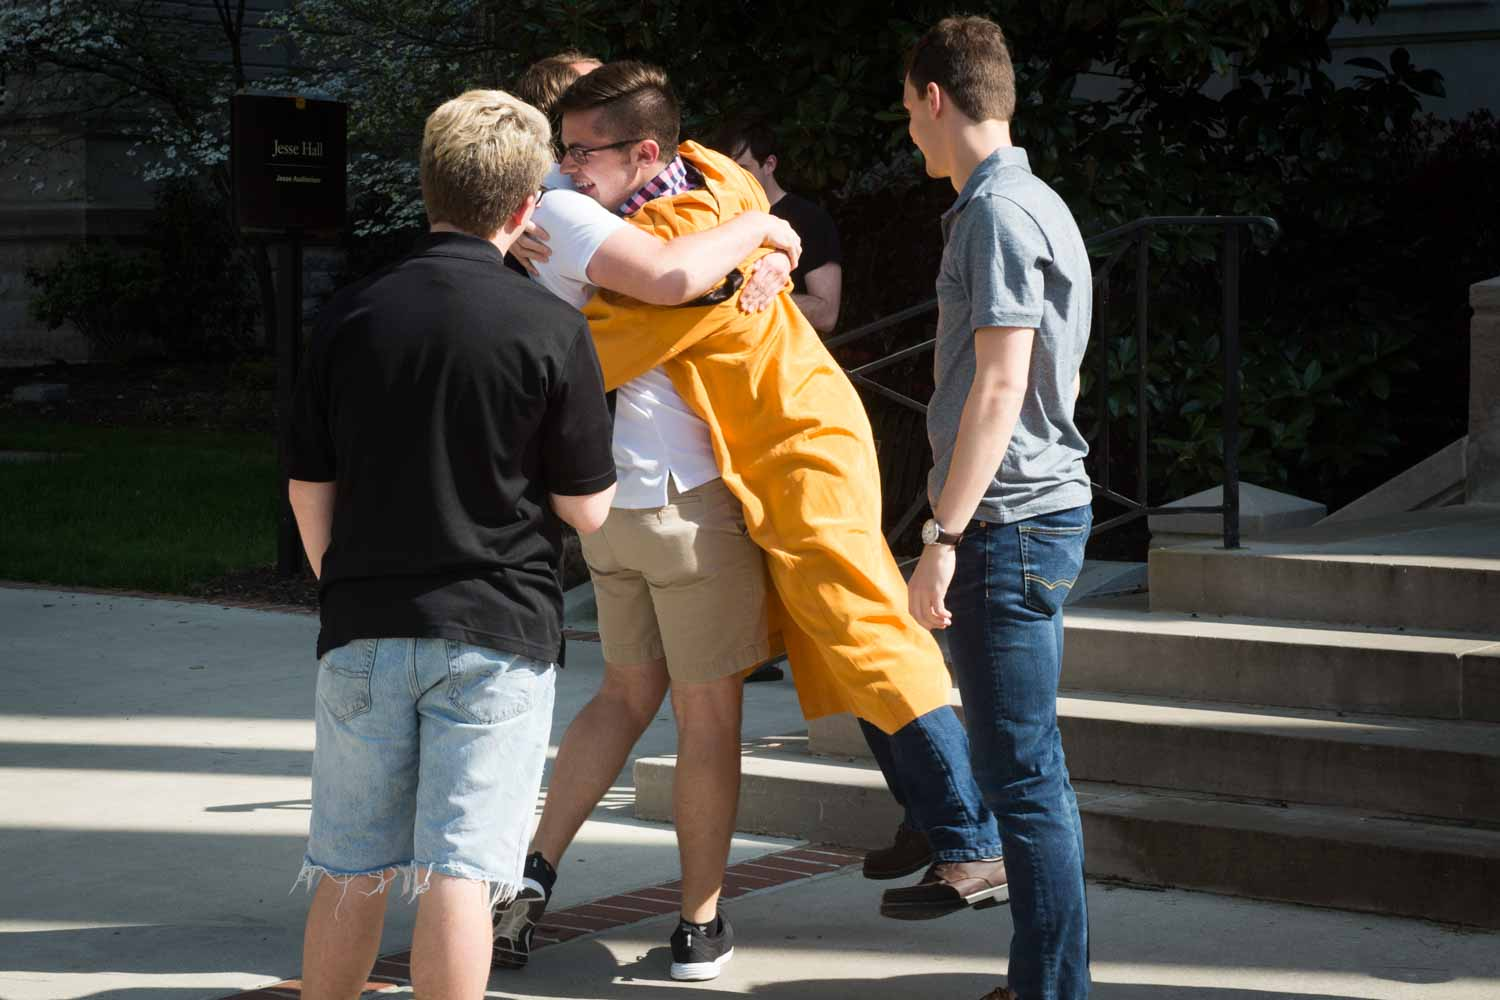 Jake Boeding receives a celebratory hug from a friend after leaving Jesse Hall.